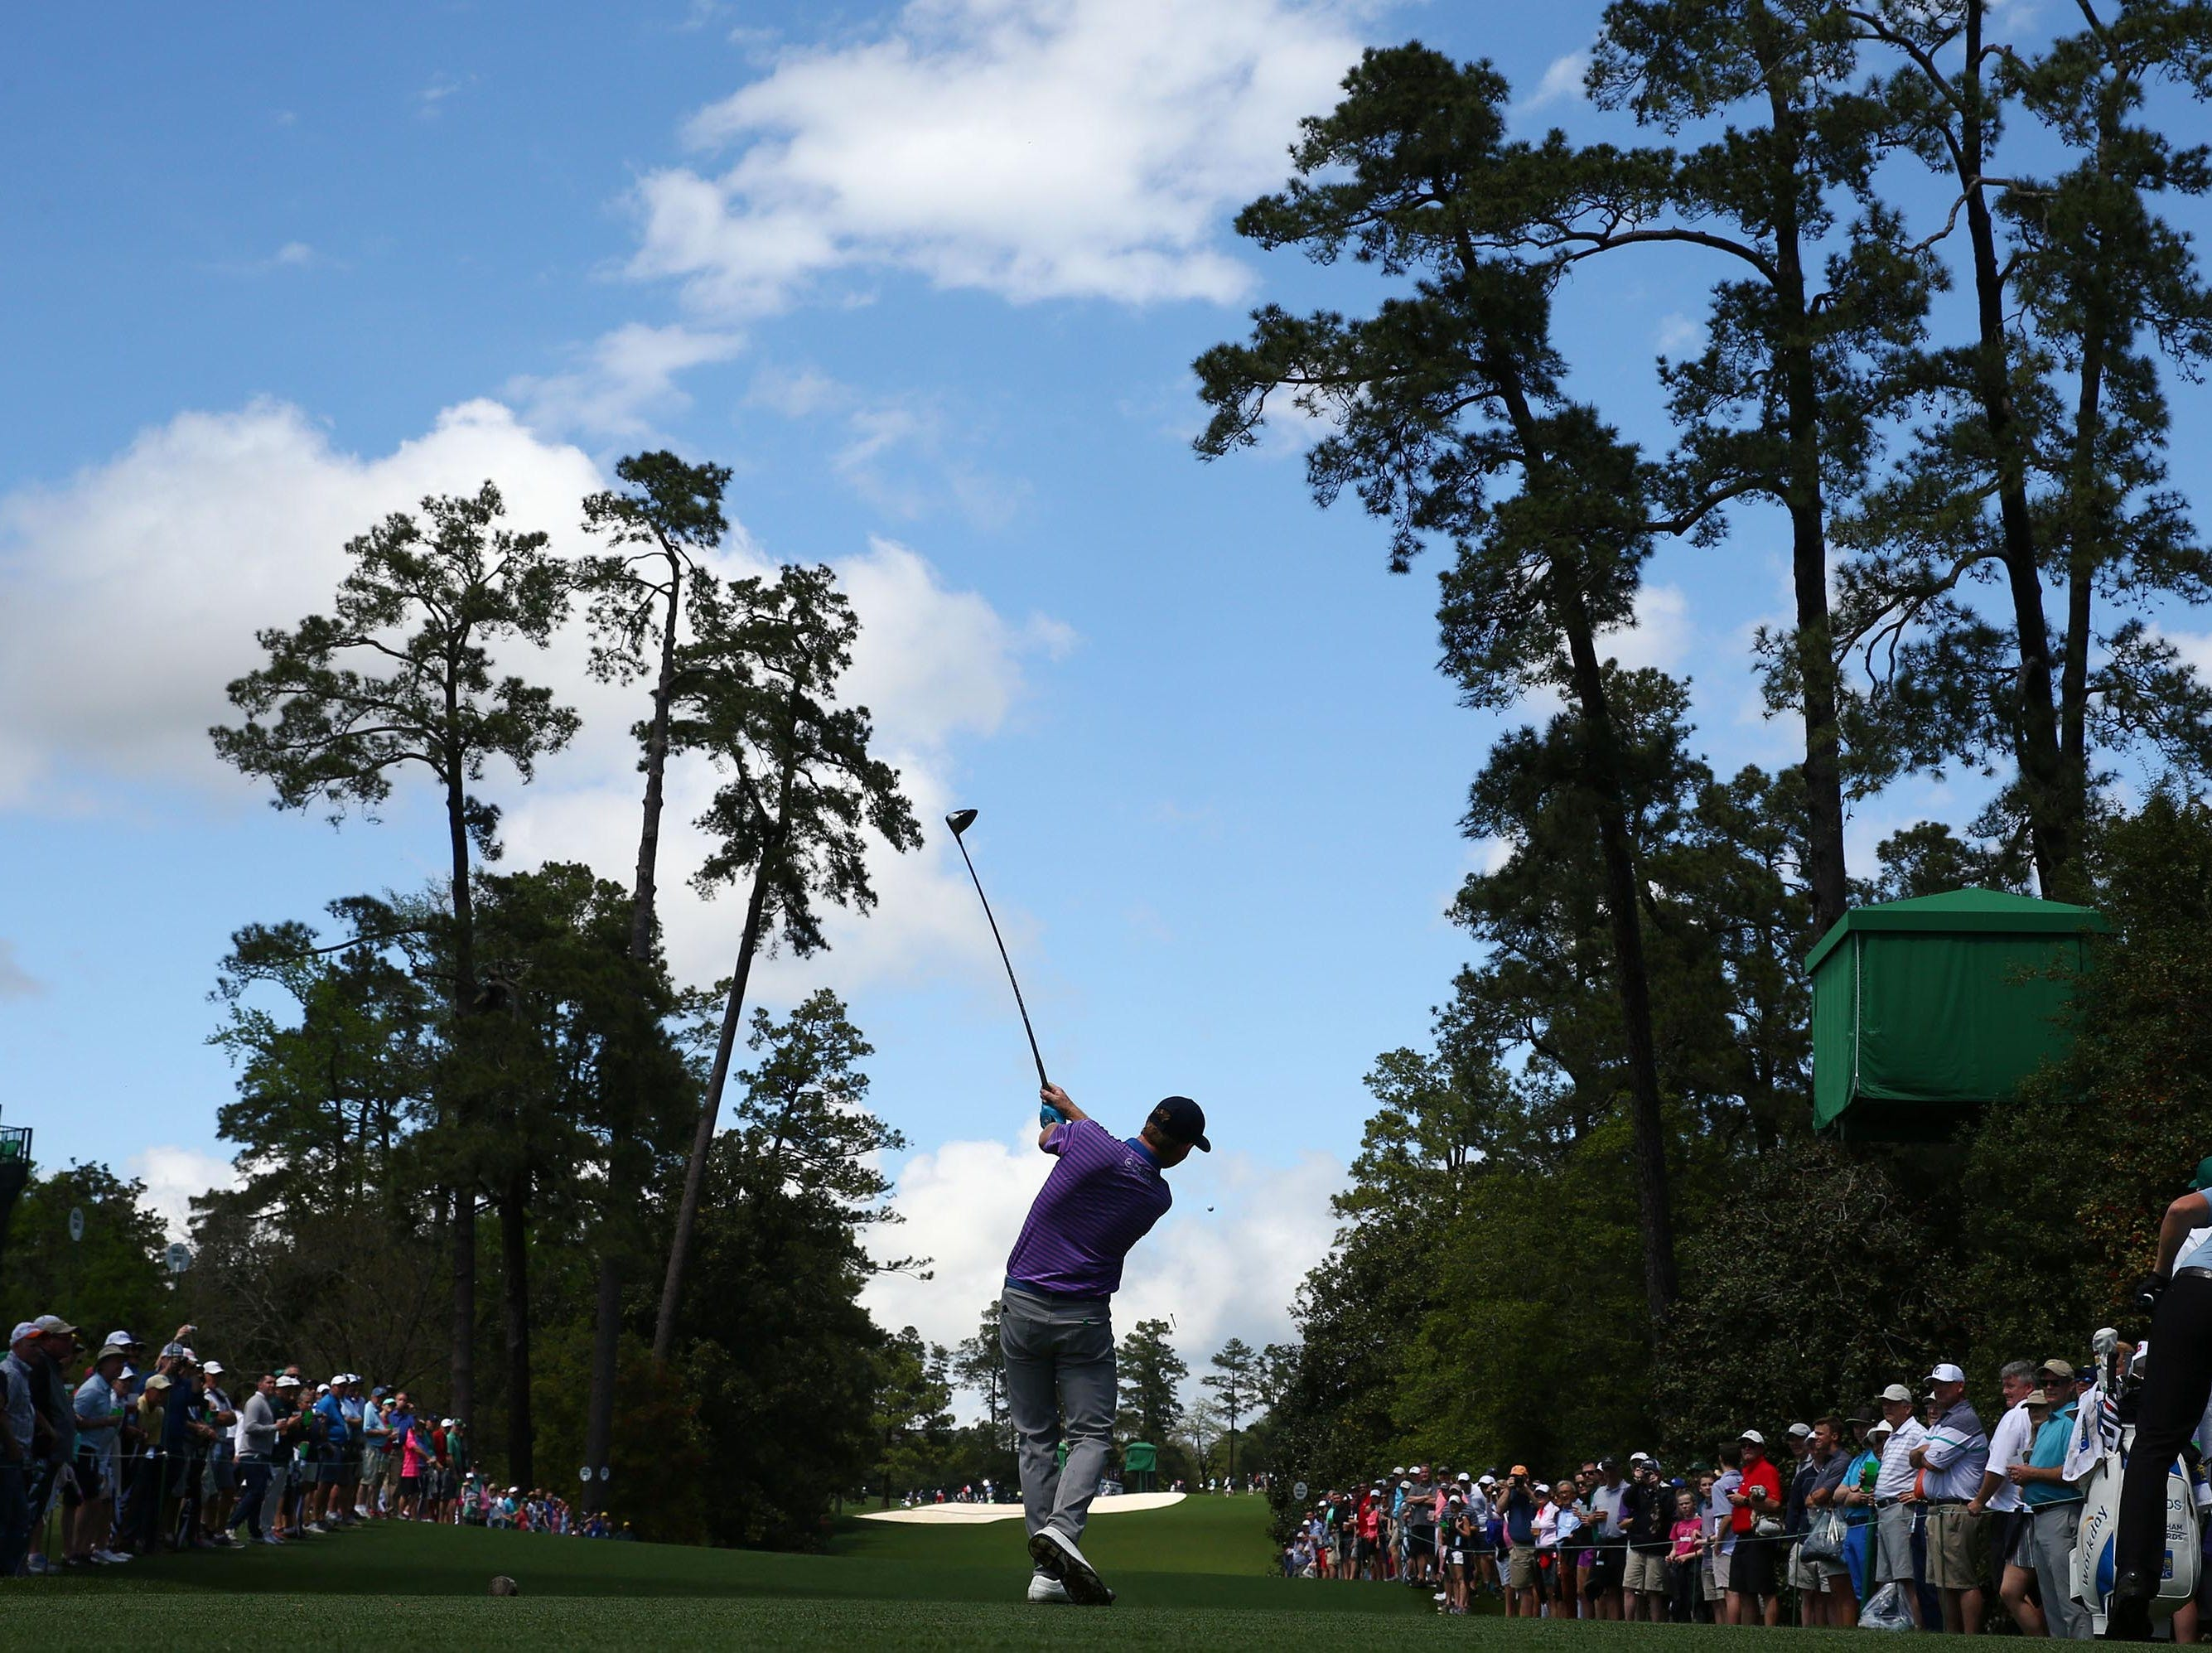 Apr 9, 2019; Augusta, GA, USA; Brandt Snedeker hits his drive on the 18th hole during a practice round for The Masters golf tournament at Augusta National Golf Club. Mandatory Credit: Rob Schumacher-USA TODAY Sports